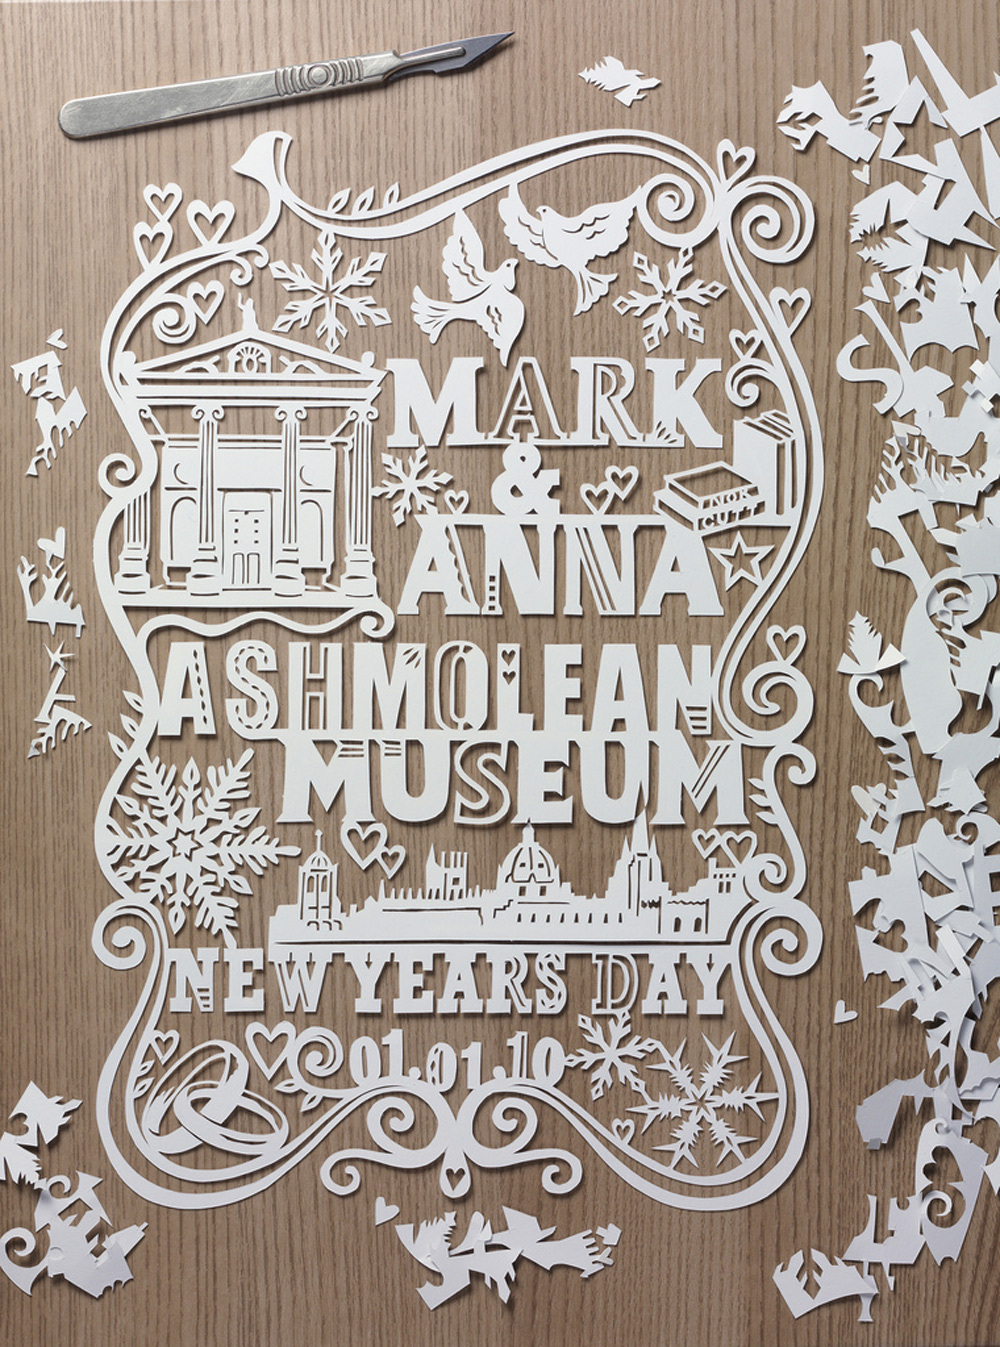 customized papercut wedding invite with doves and snowflakes